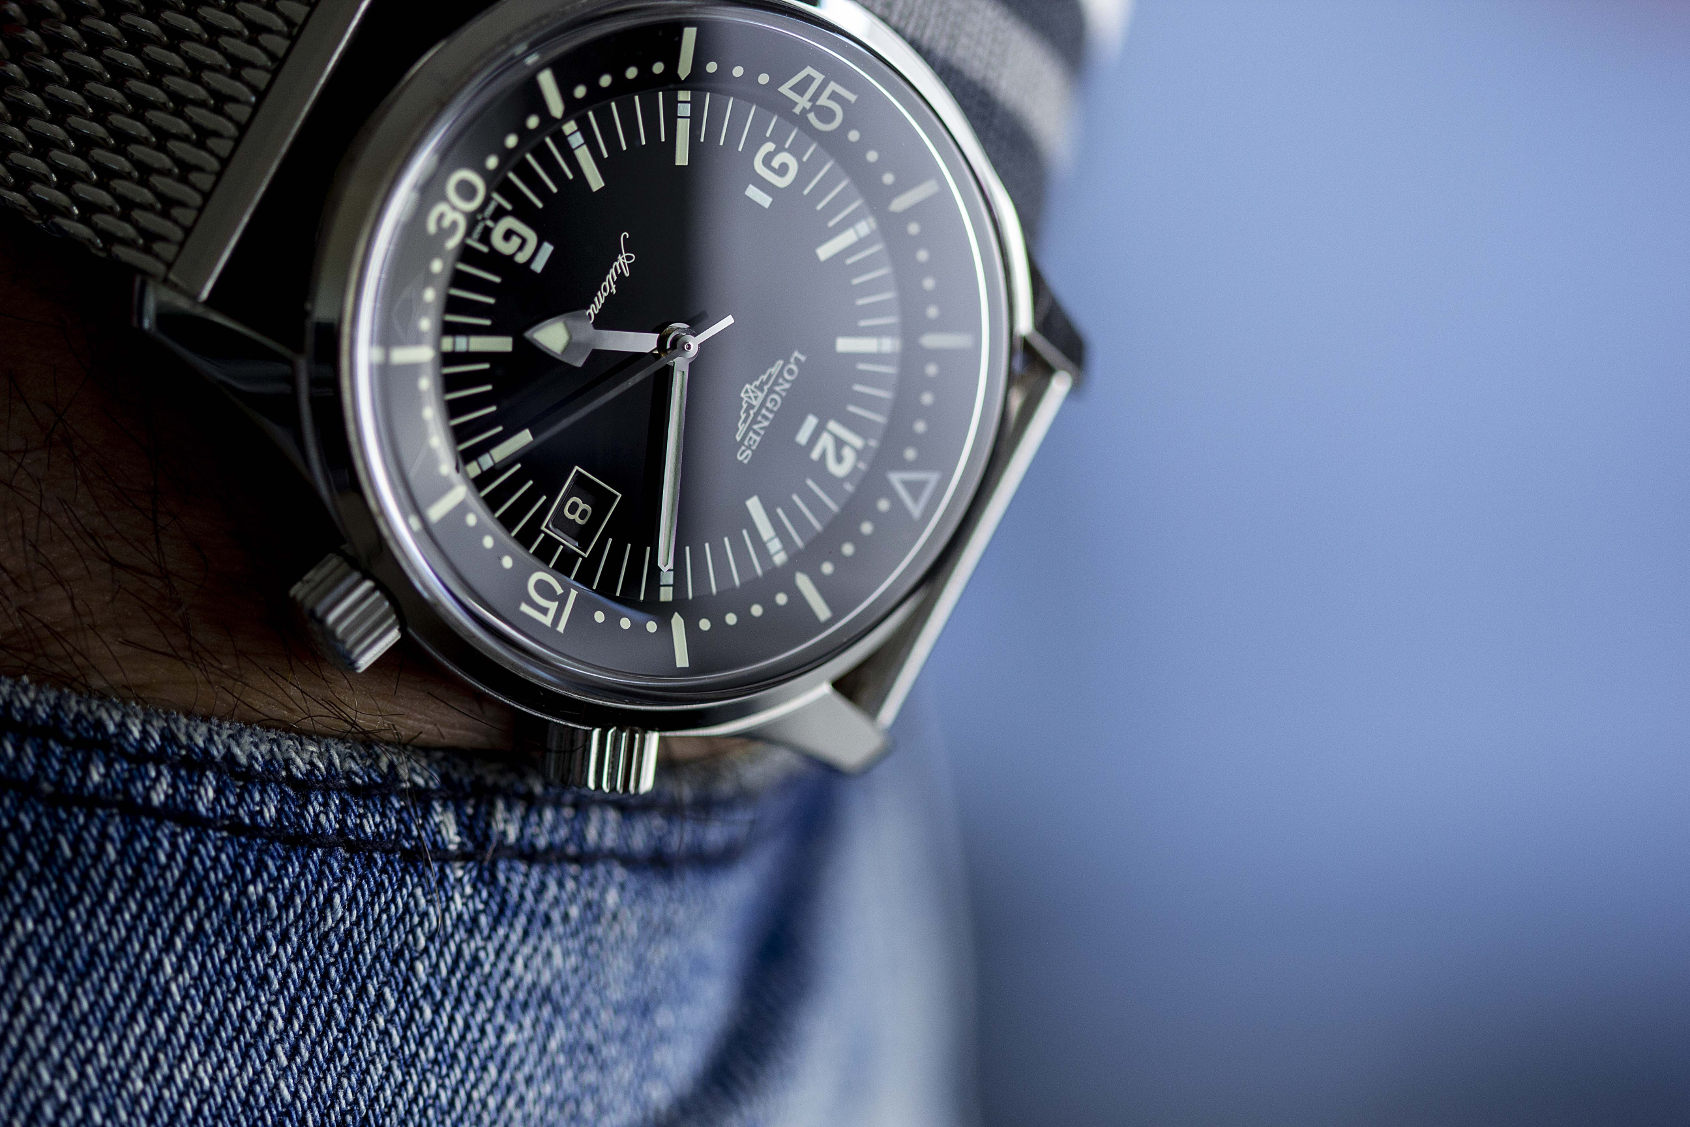 Level up your watch photography with @MracekProductions